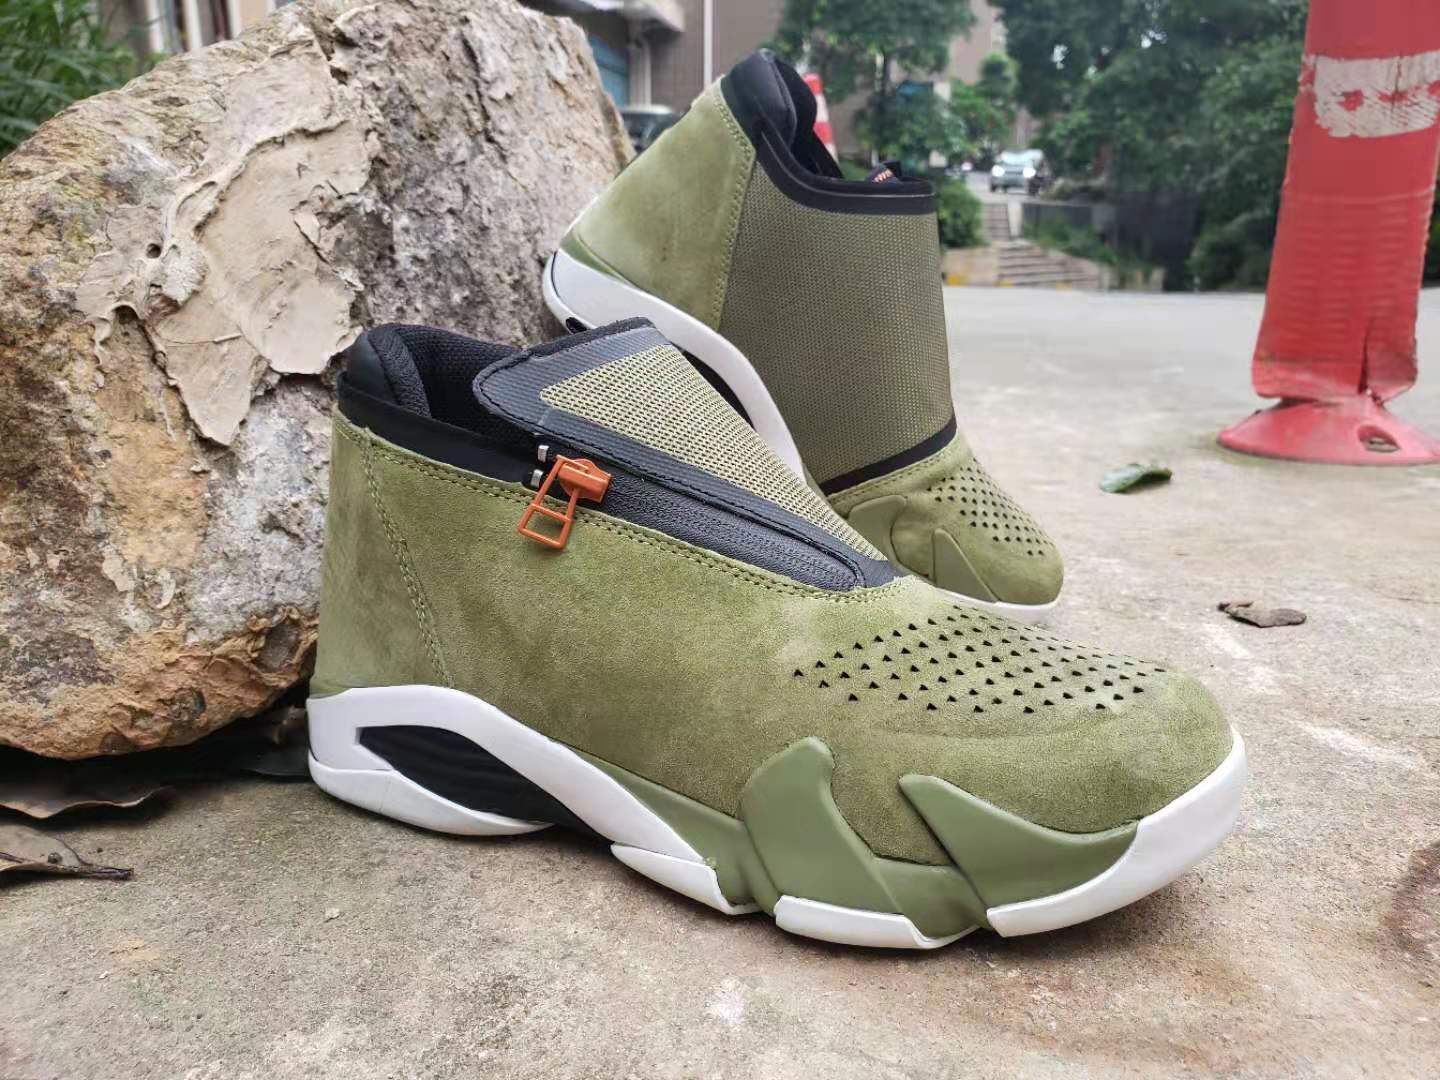 New 2019 Air Jordan 14 Retro Zipper Army Green Black